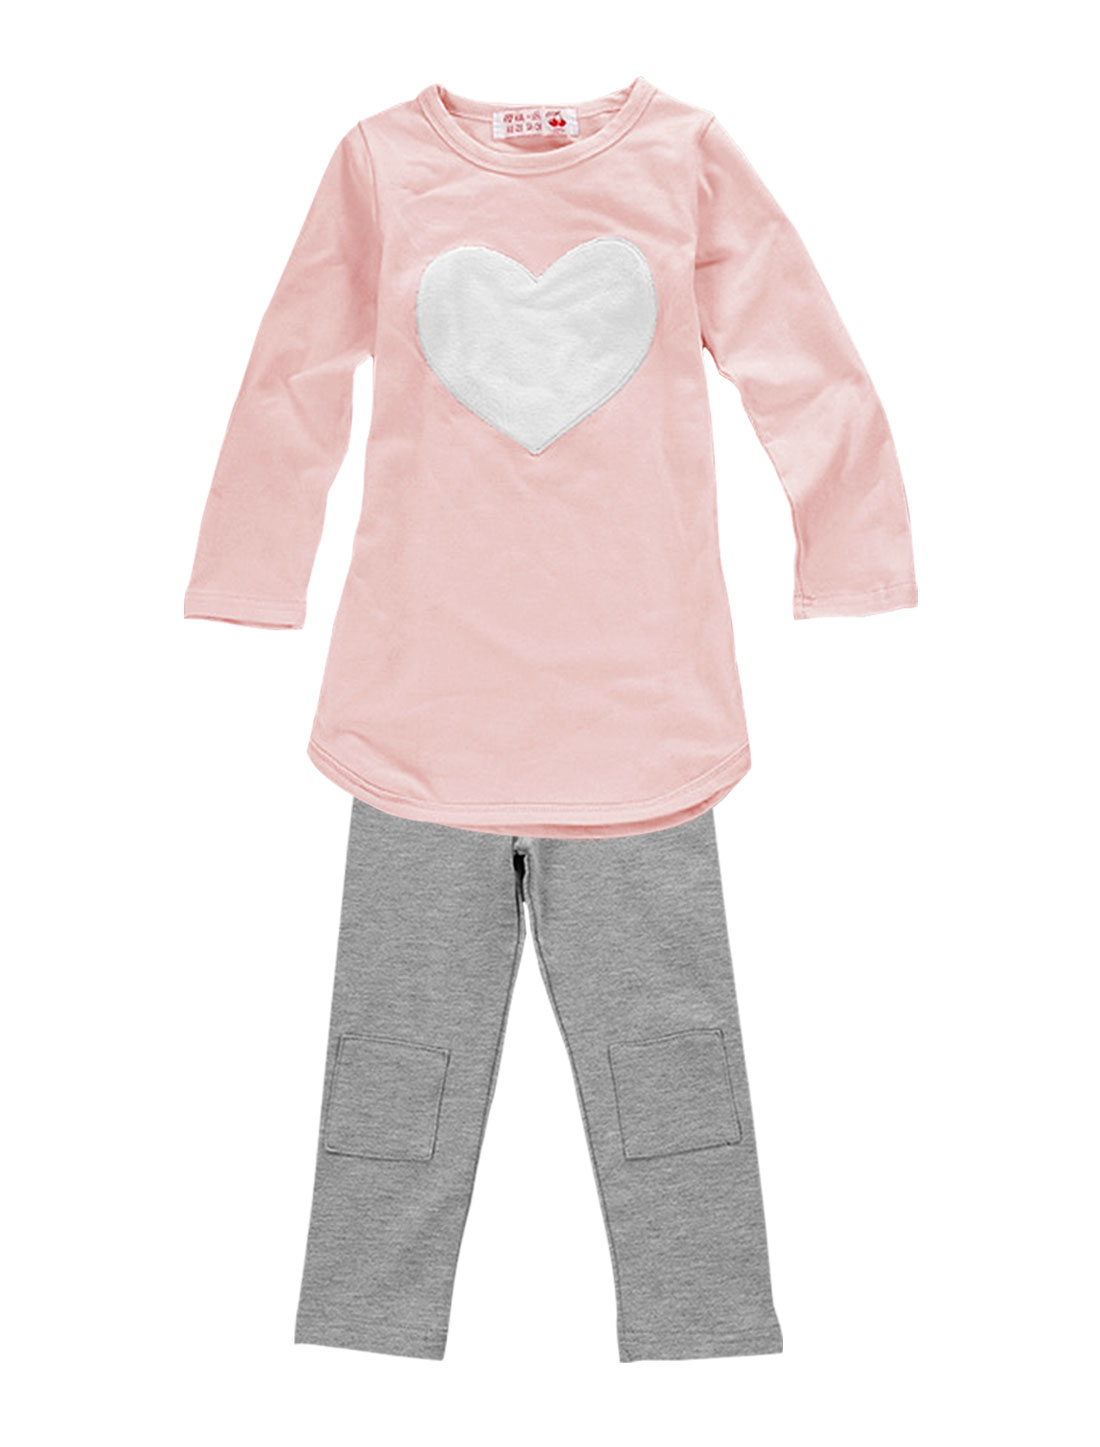 Girls Heart Shape Panel Top w Elastic Waist Pants 3-Pieces Sets Pink Gray 4